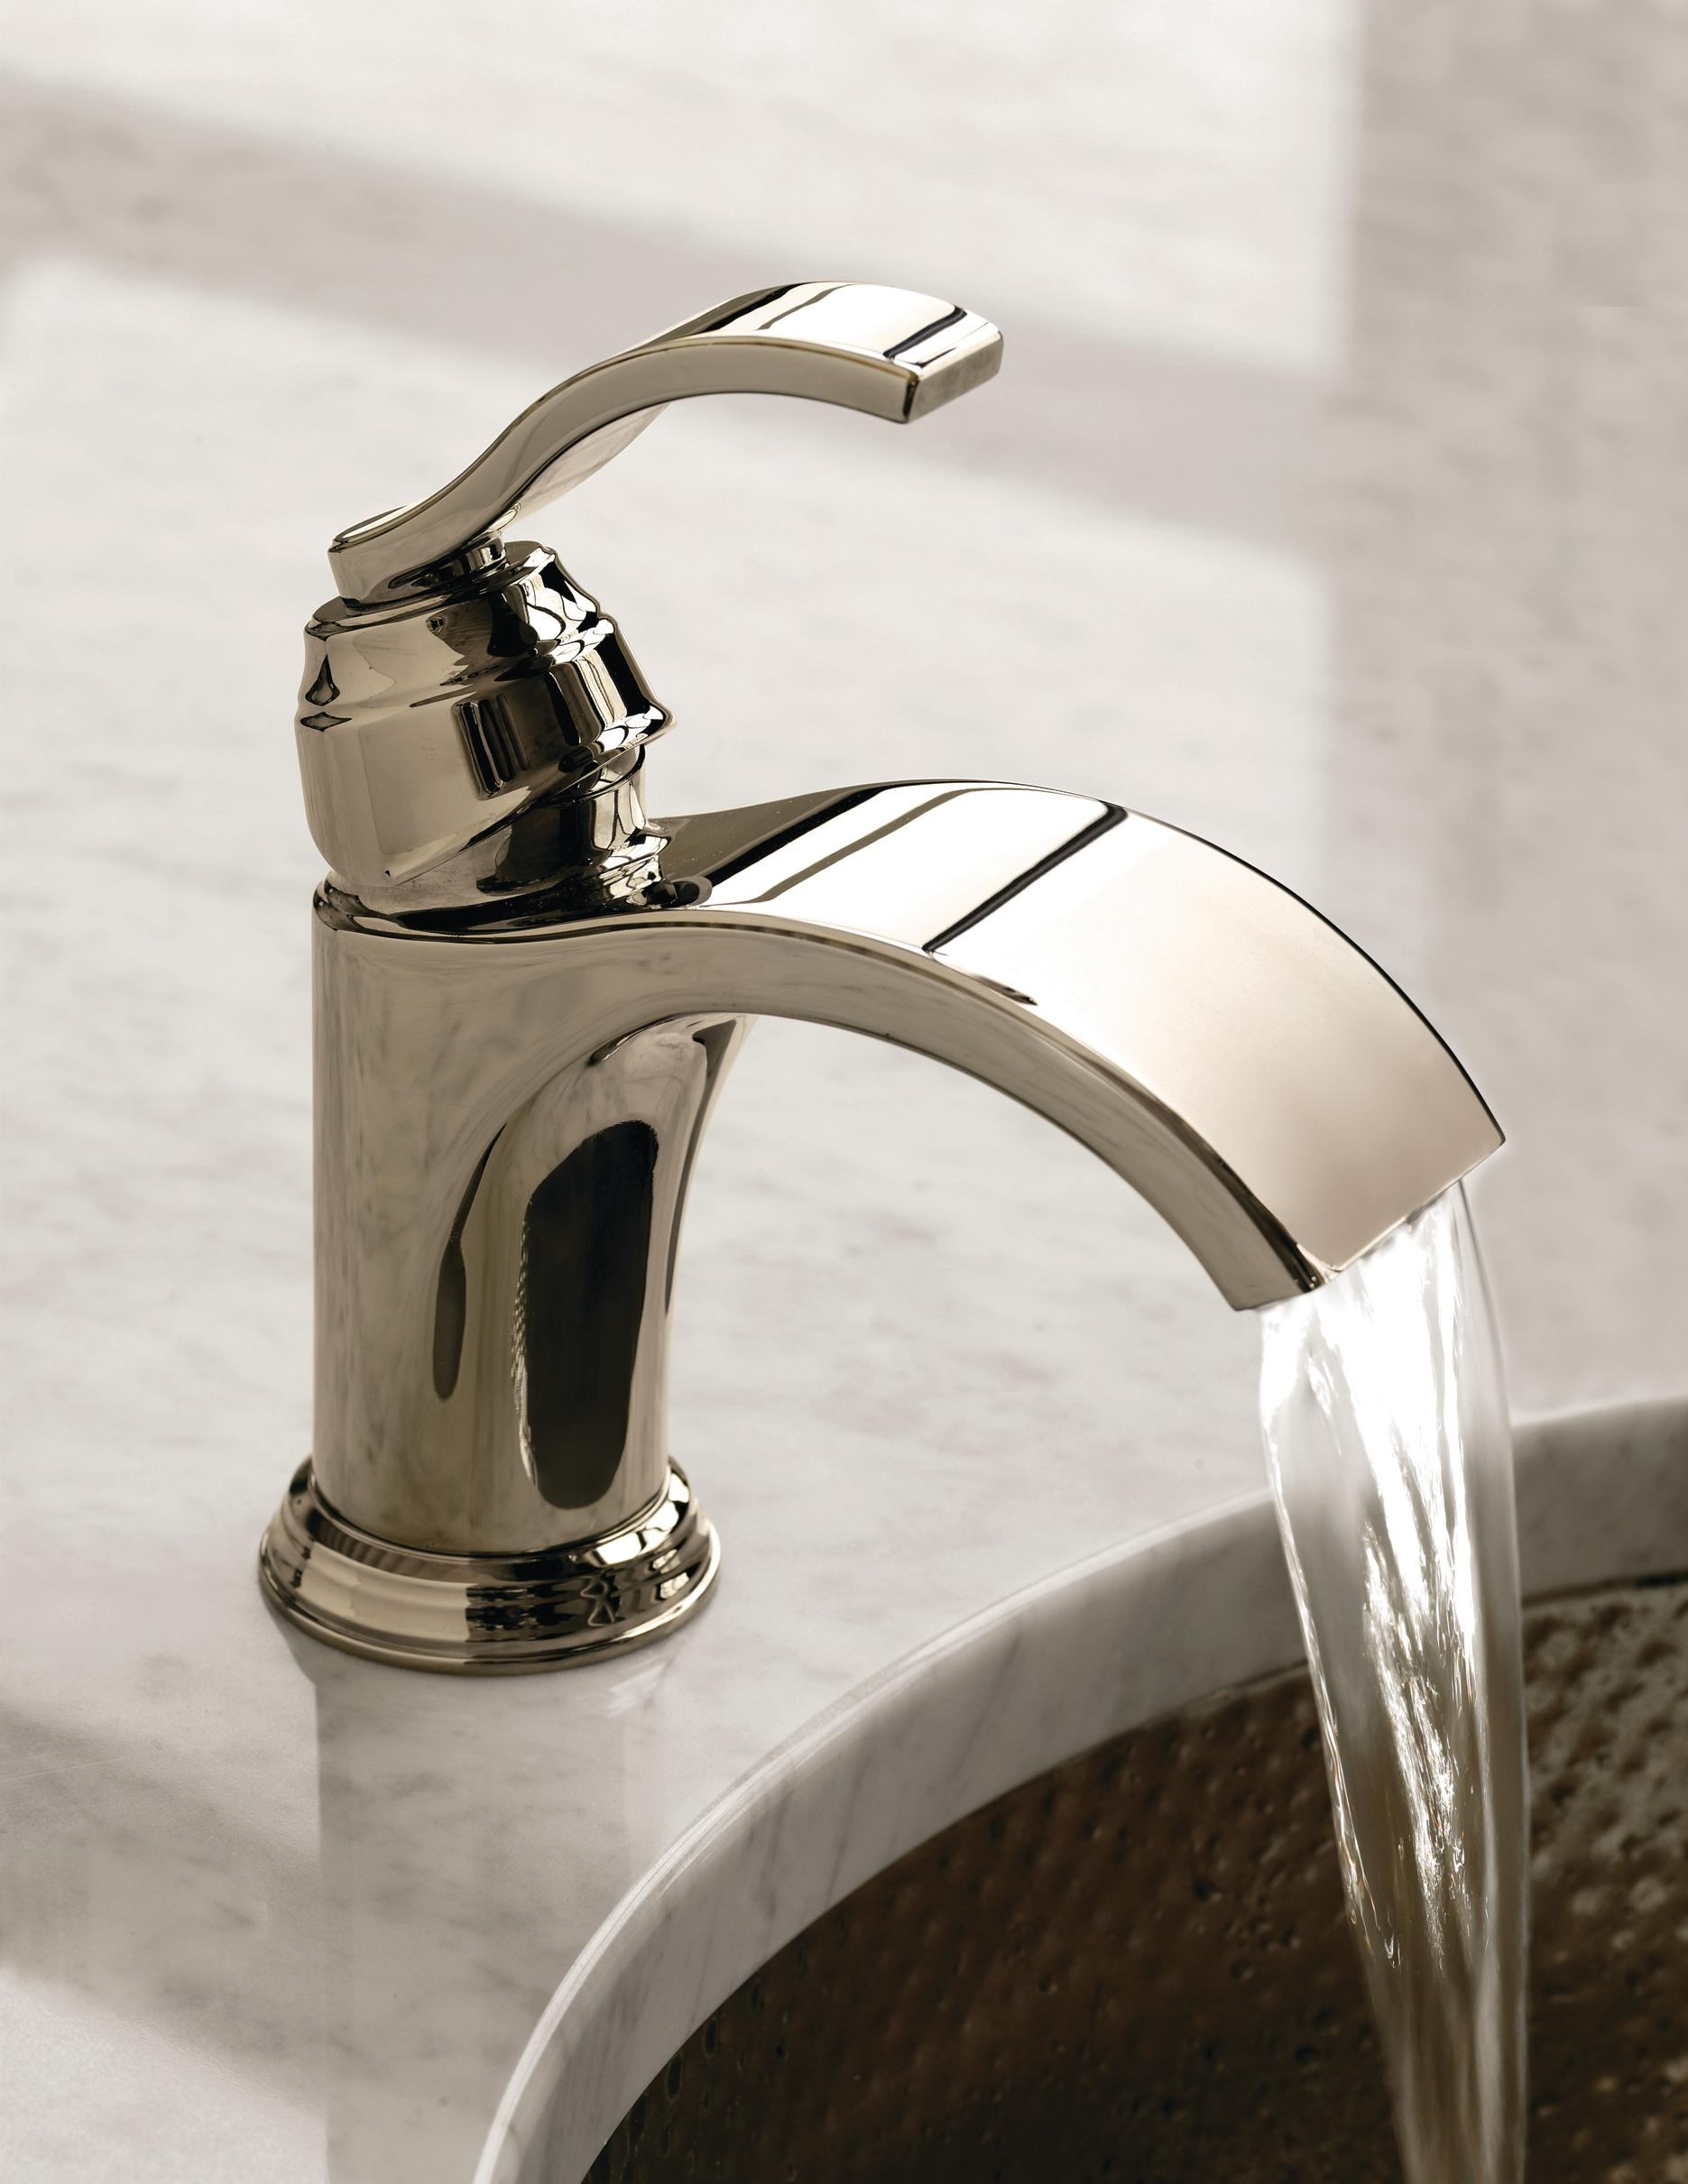 Danze Bathroom Faucets - Home Design Ideas and Pictures